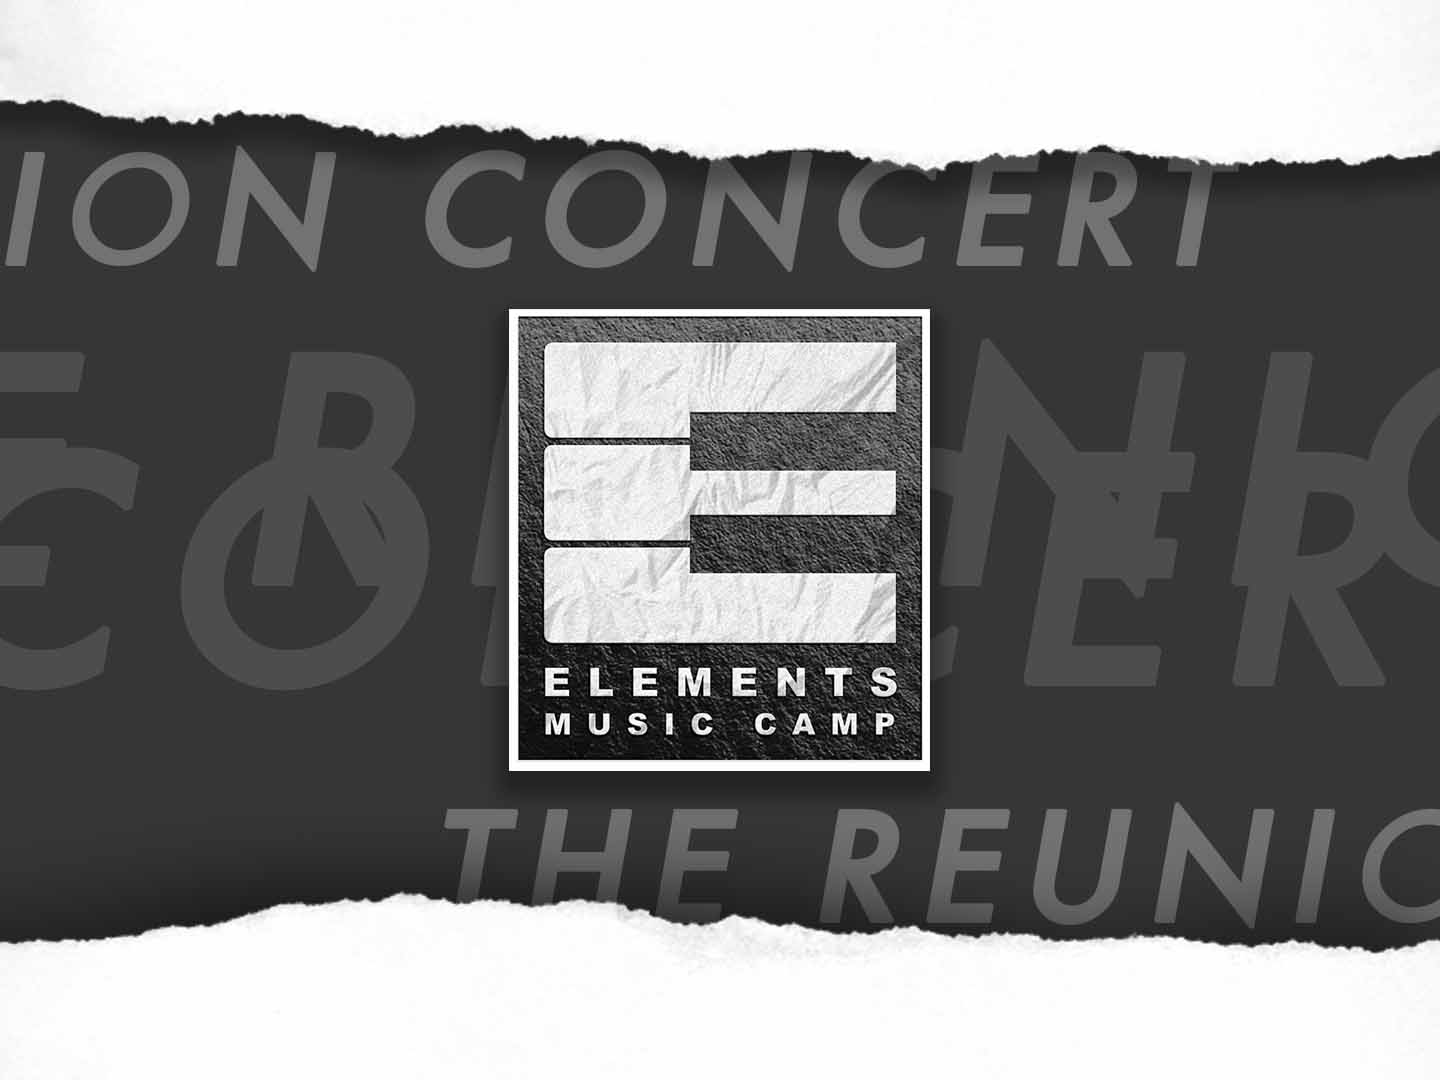 Elements Music Camp The Reunion Concert